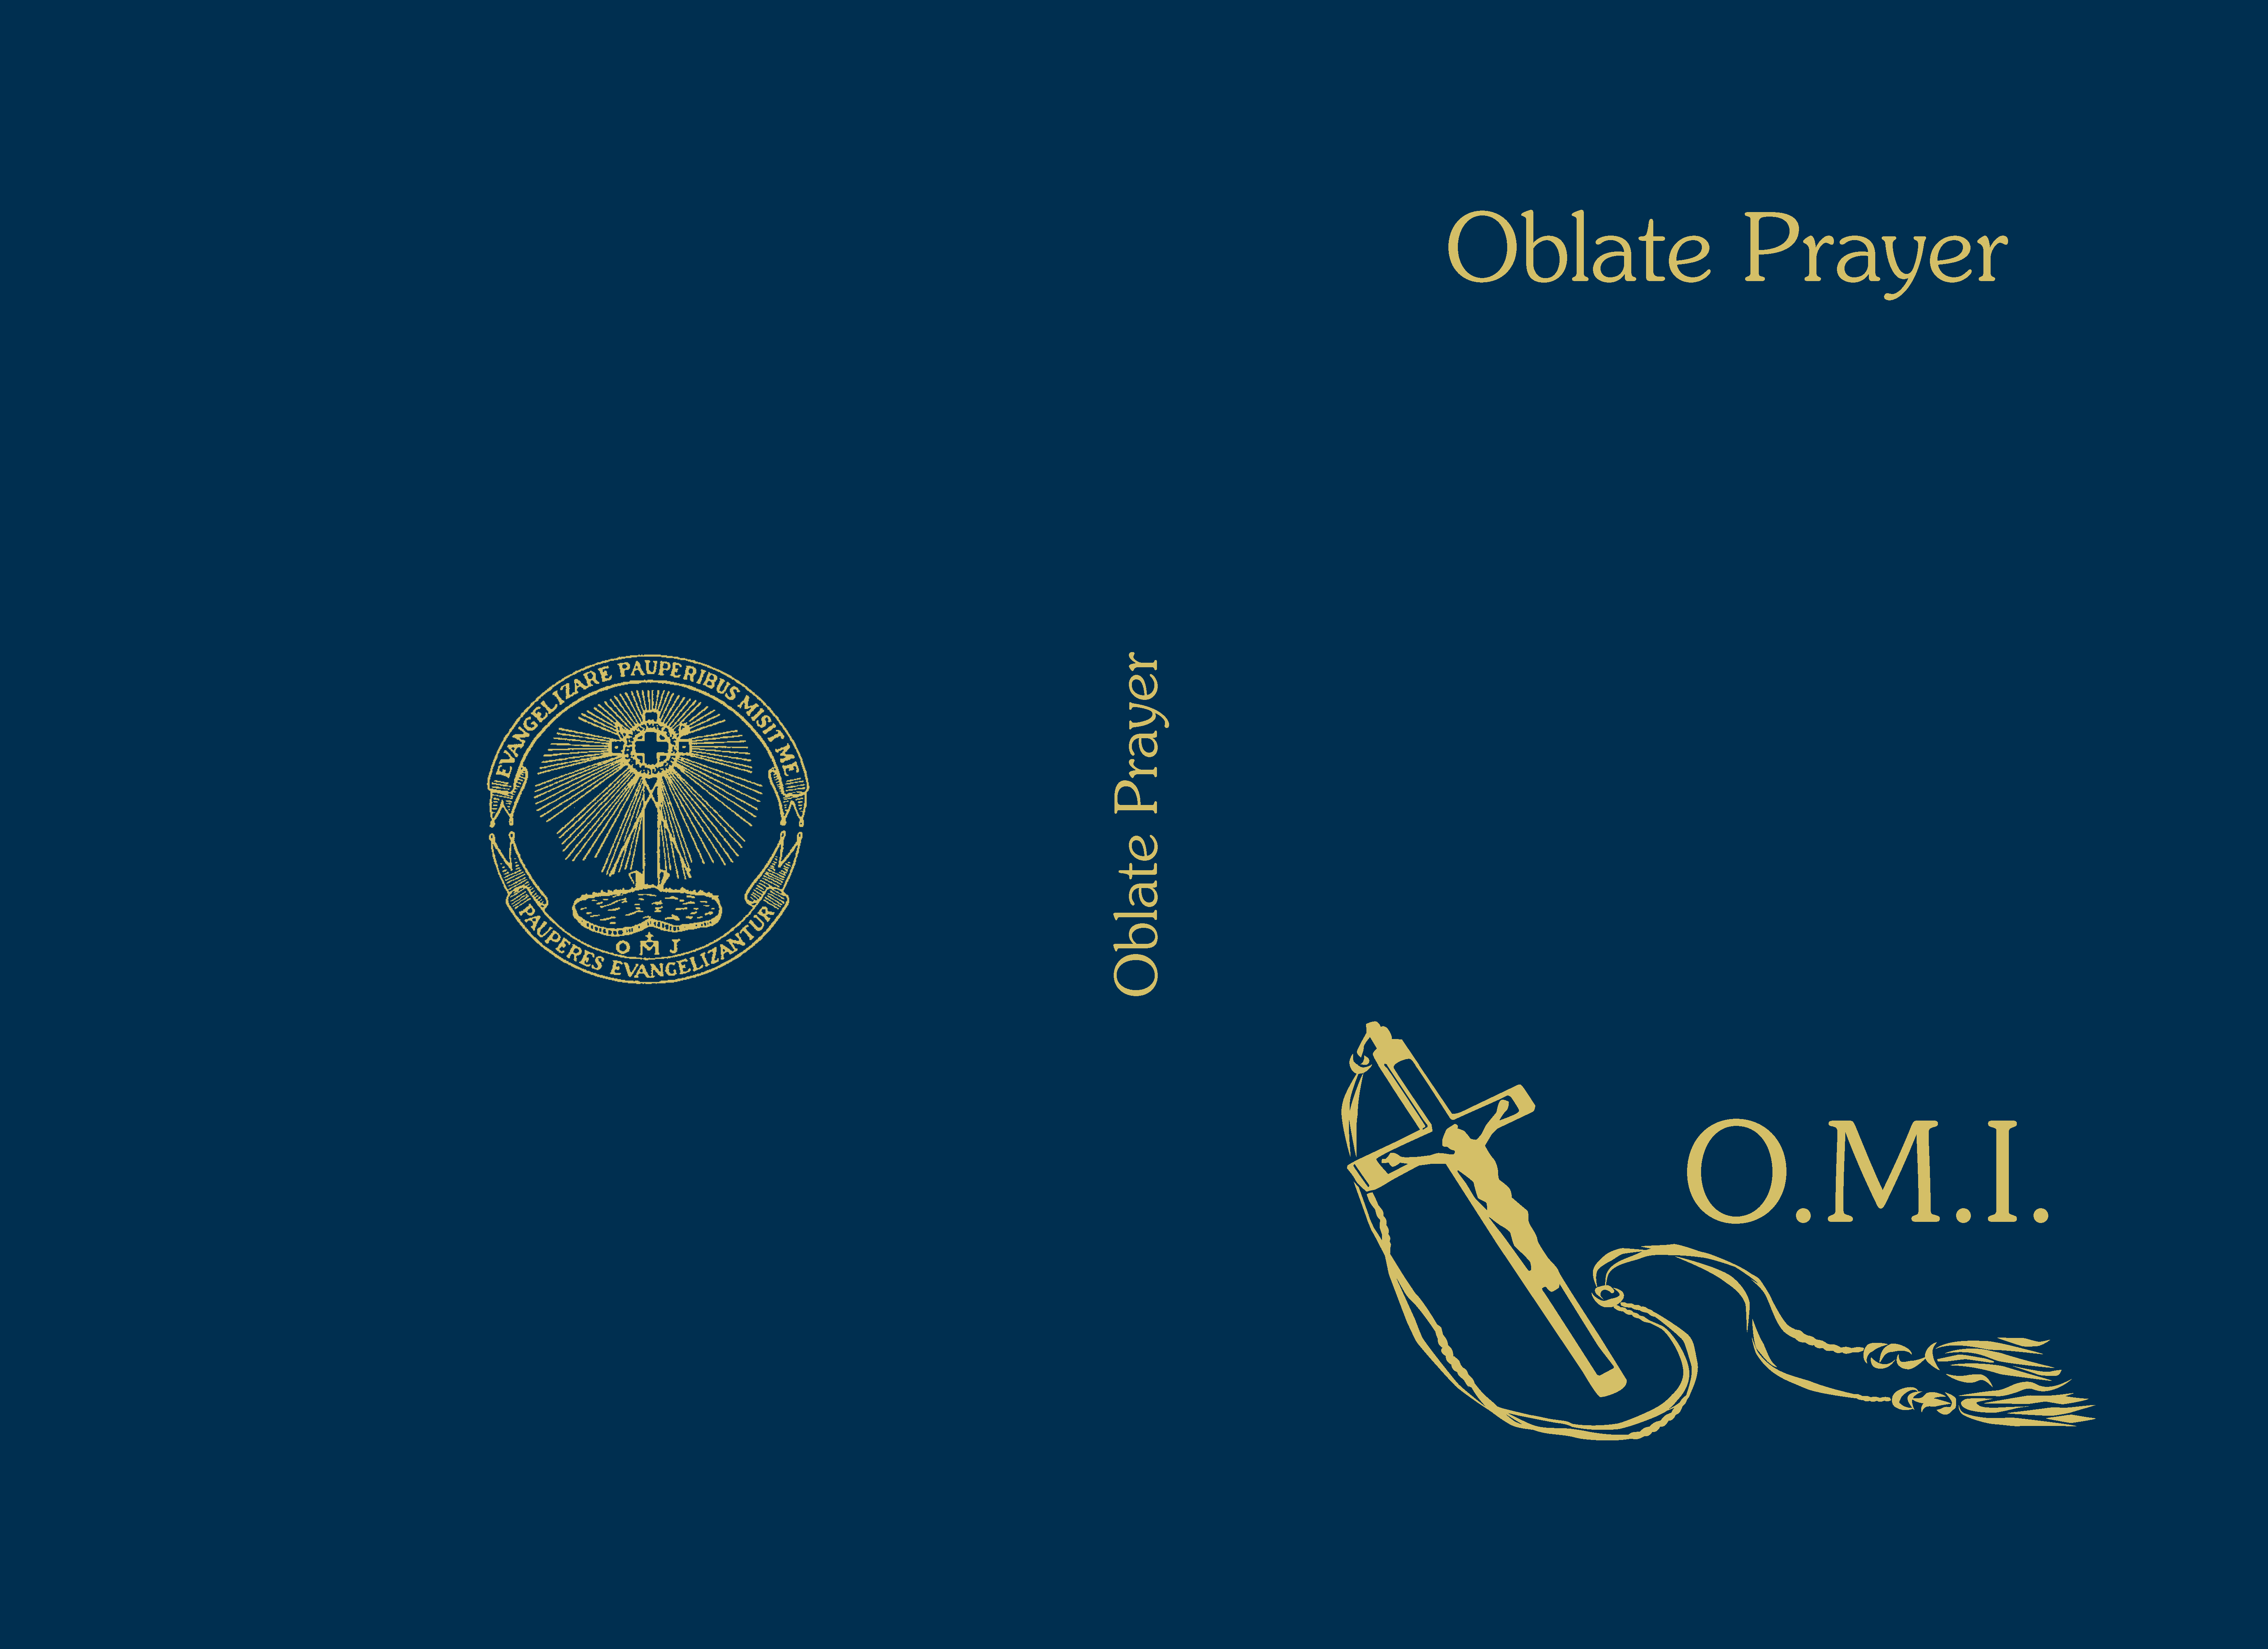 Oblate Prayer Book and Oblate Ritual: Praying and celebrating our common Oblate identity